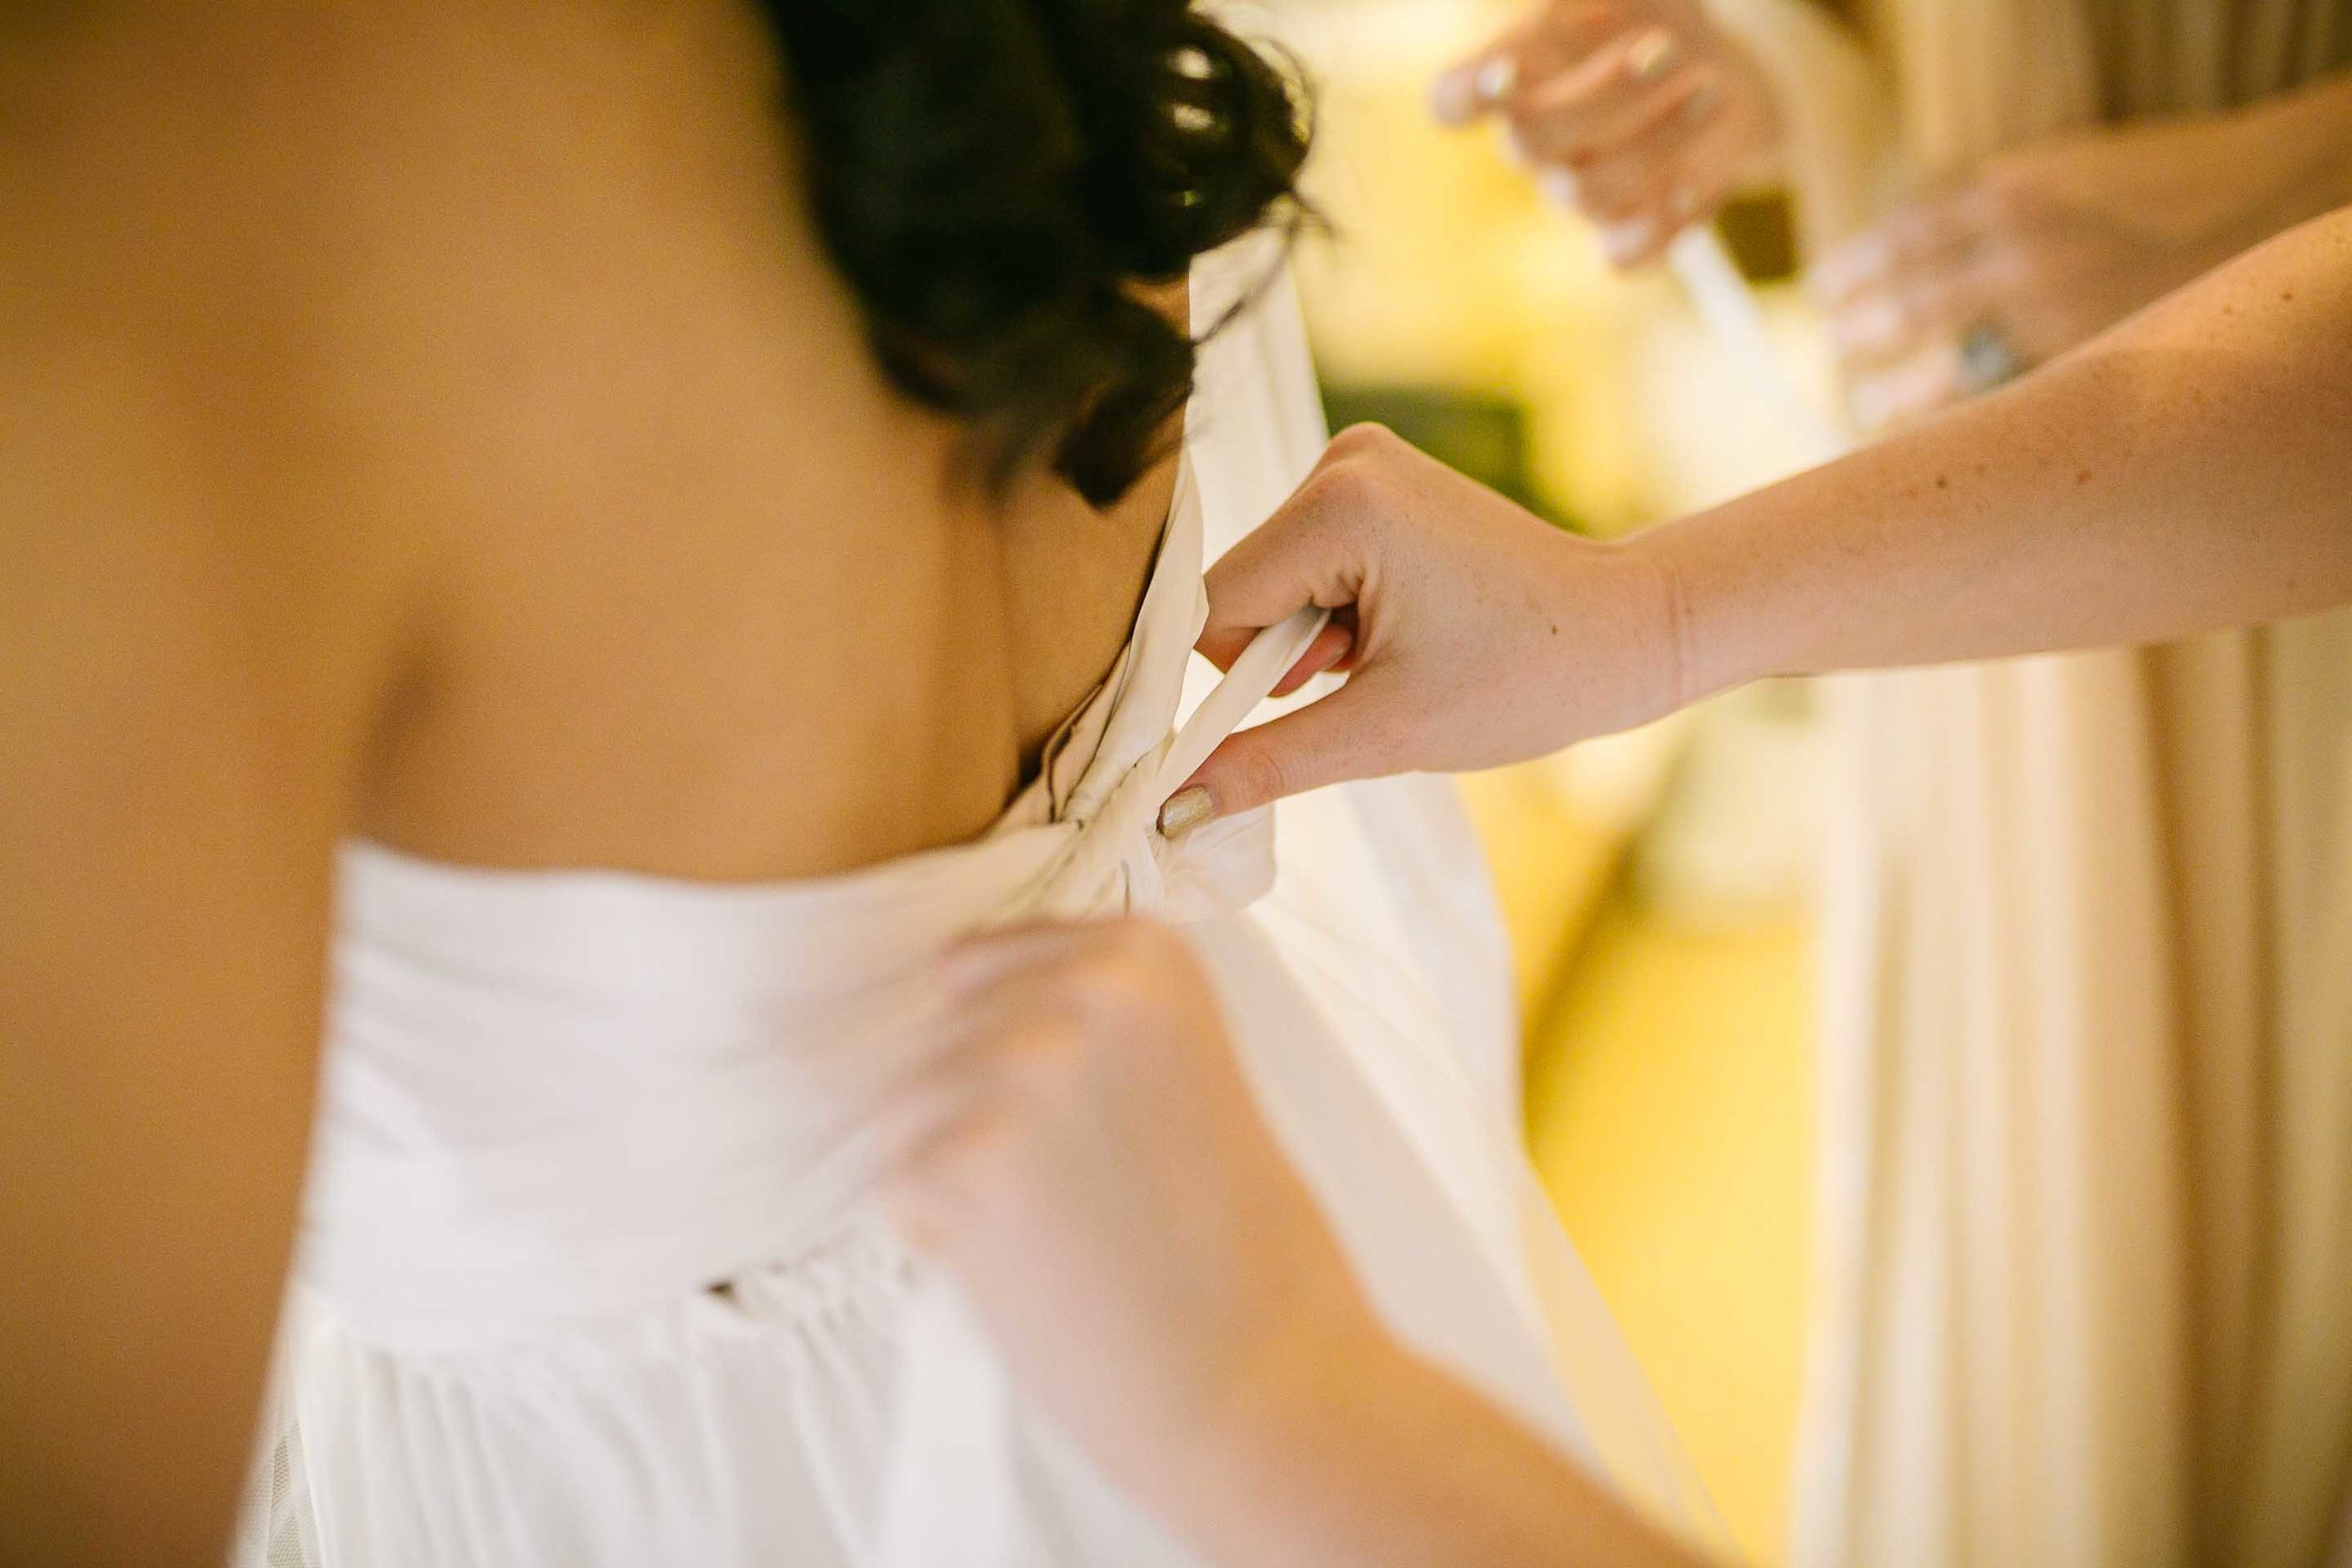 bridesmaids helping the bride into her wedding gown